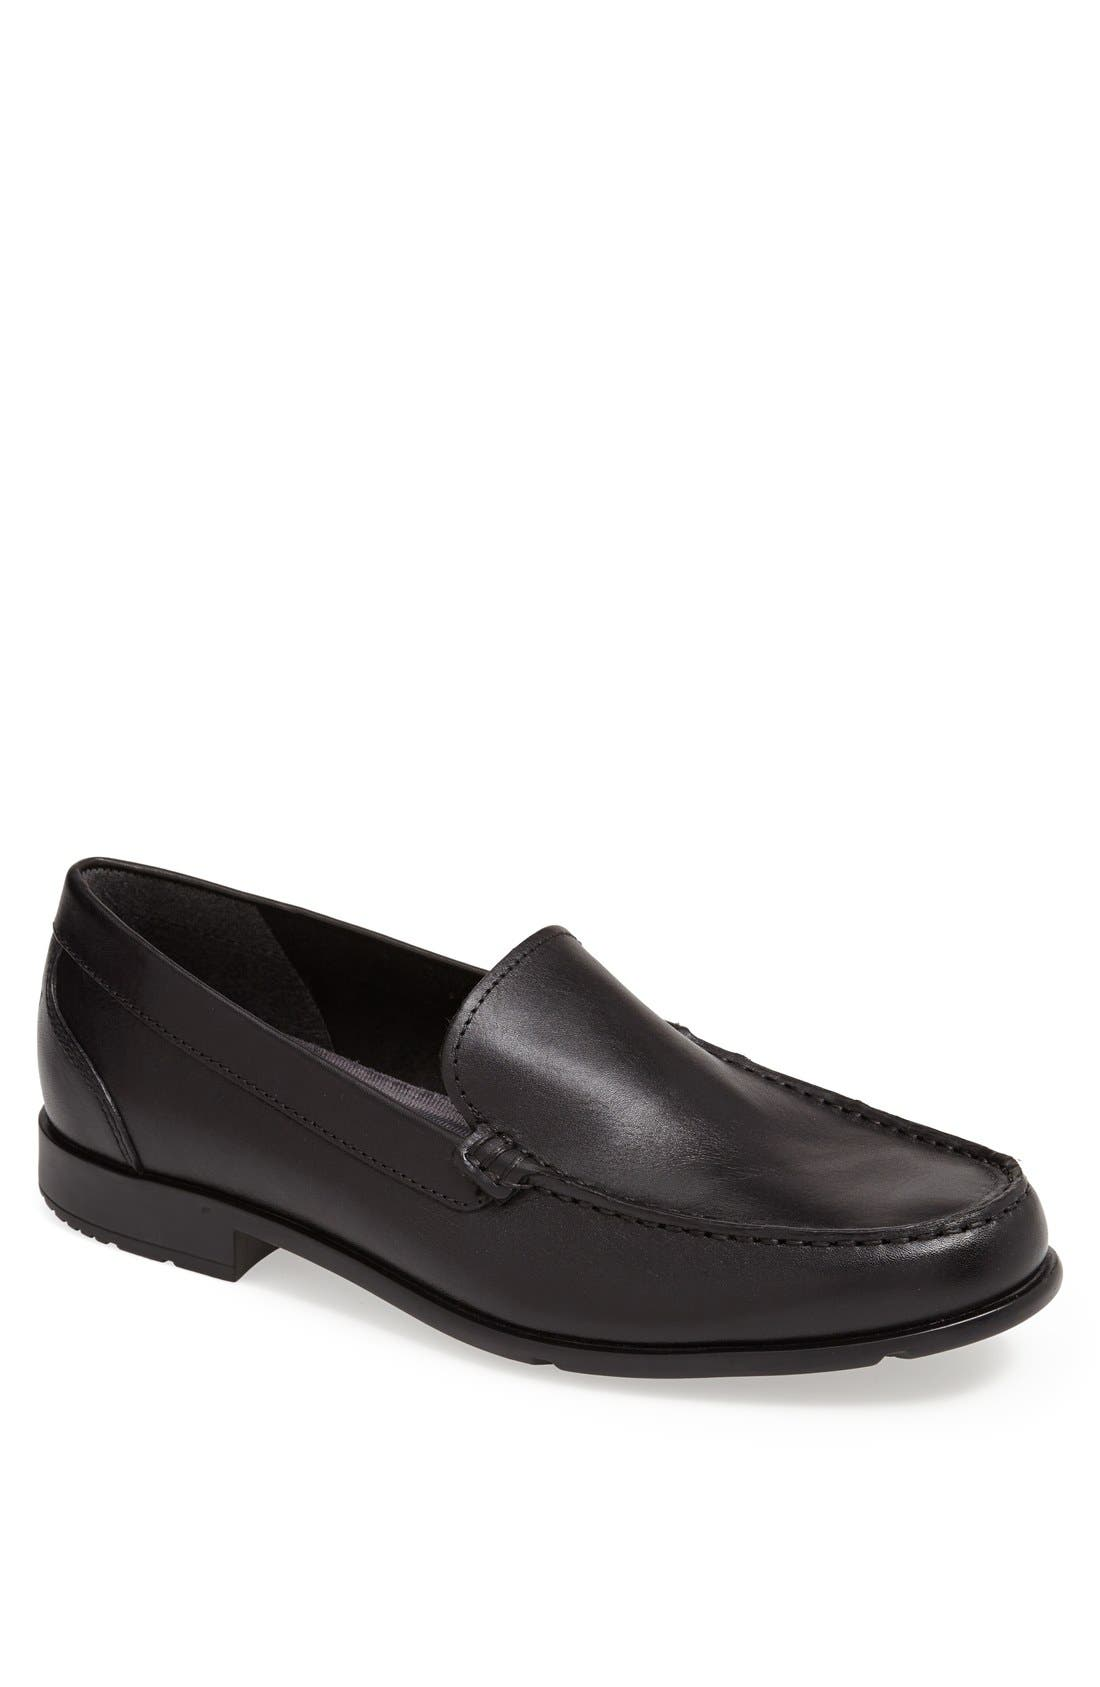 Alternate Image 1 Selected - Rockport Classic Venetian Loafer (Men)